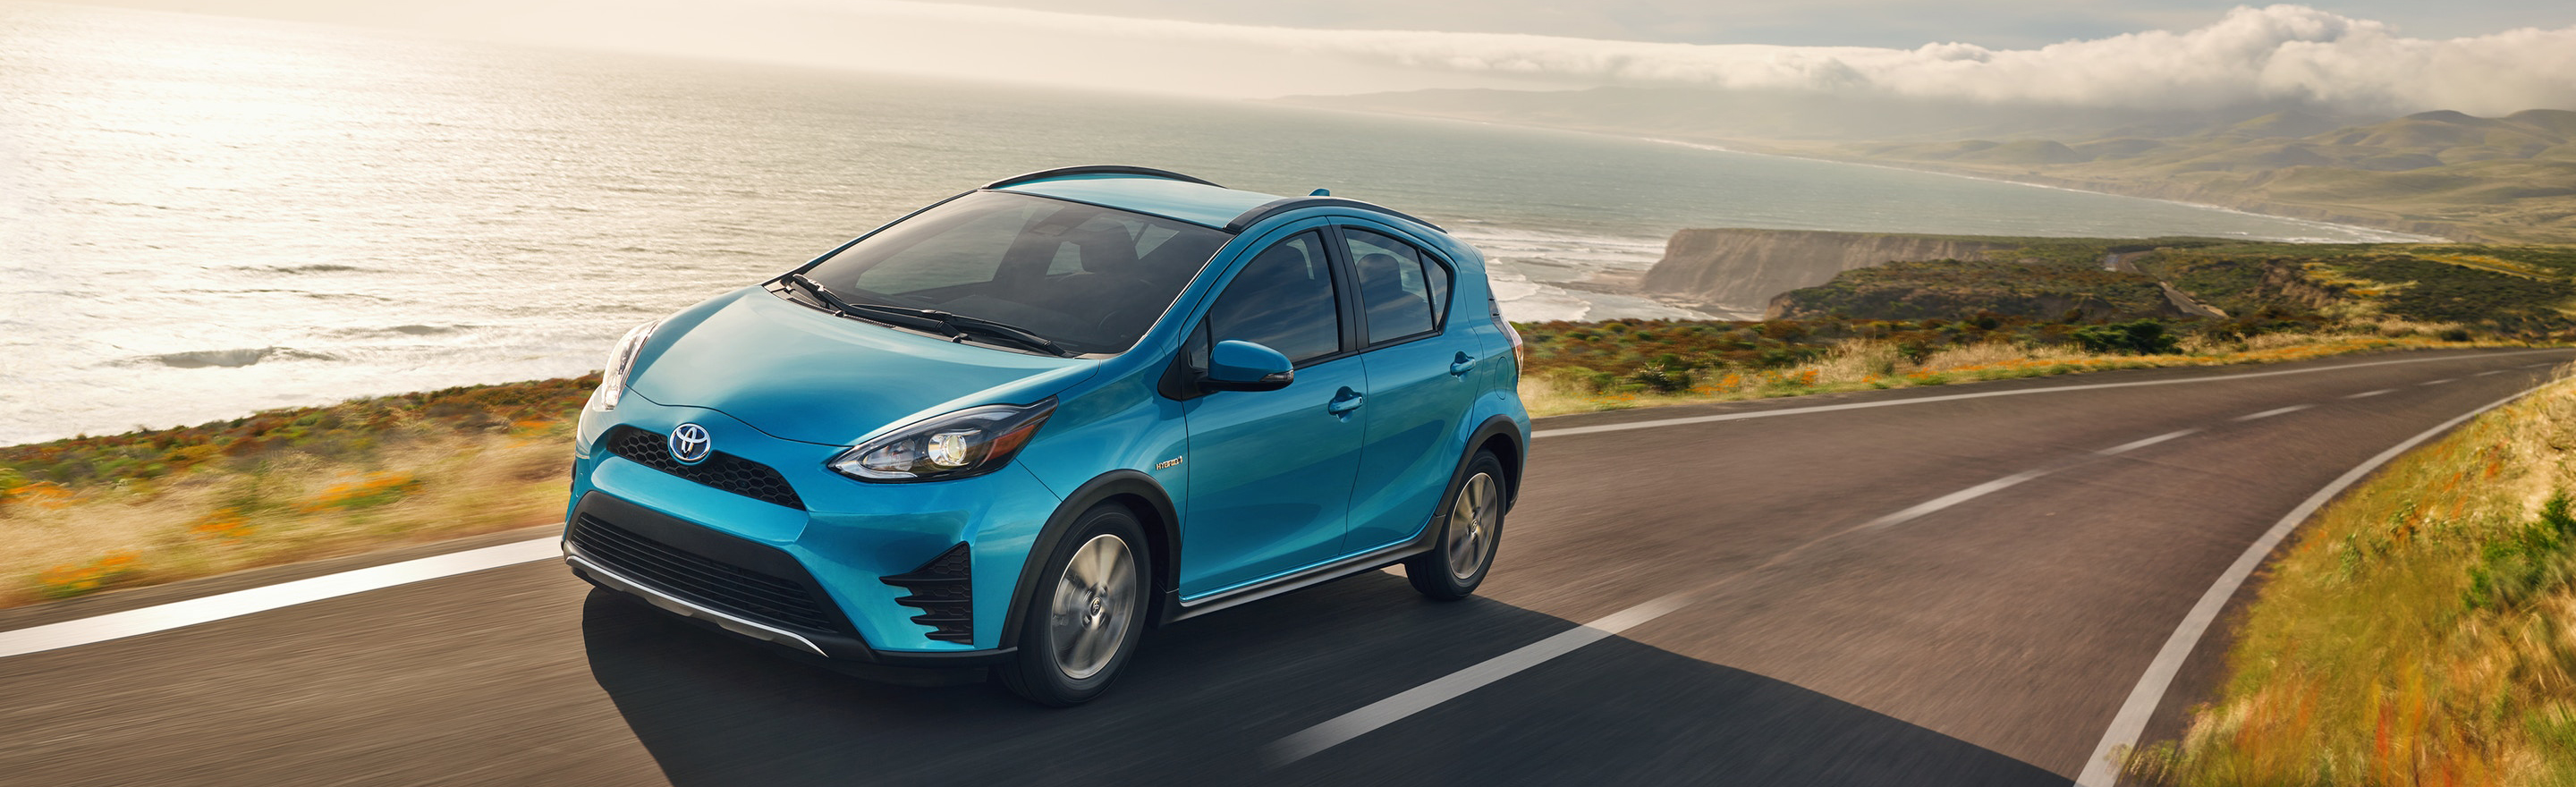 Take The Next Step In The 2019 Toyota Prius C At Ganley Toyota